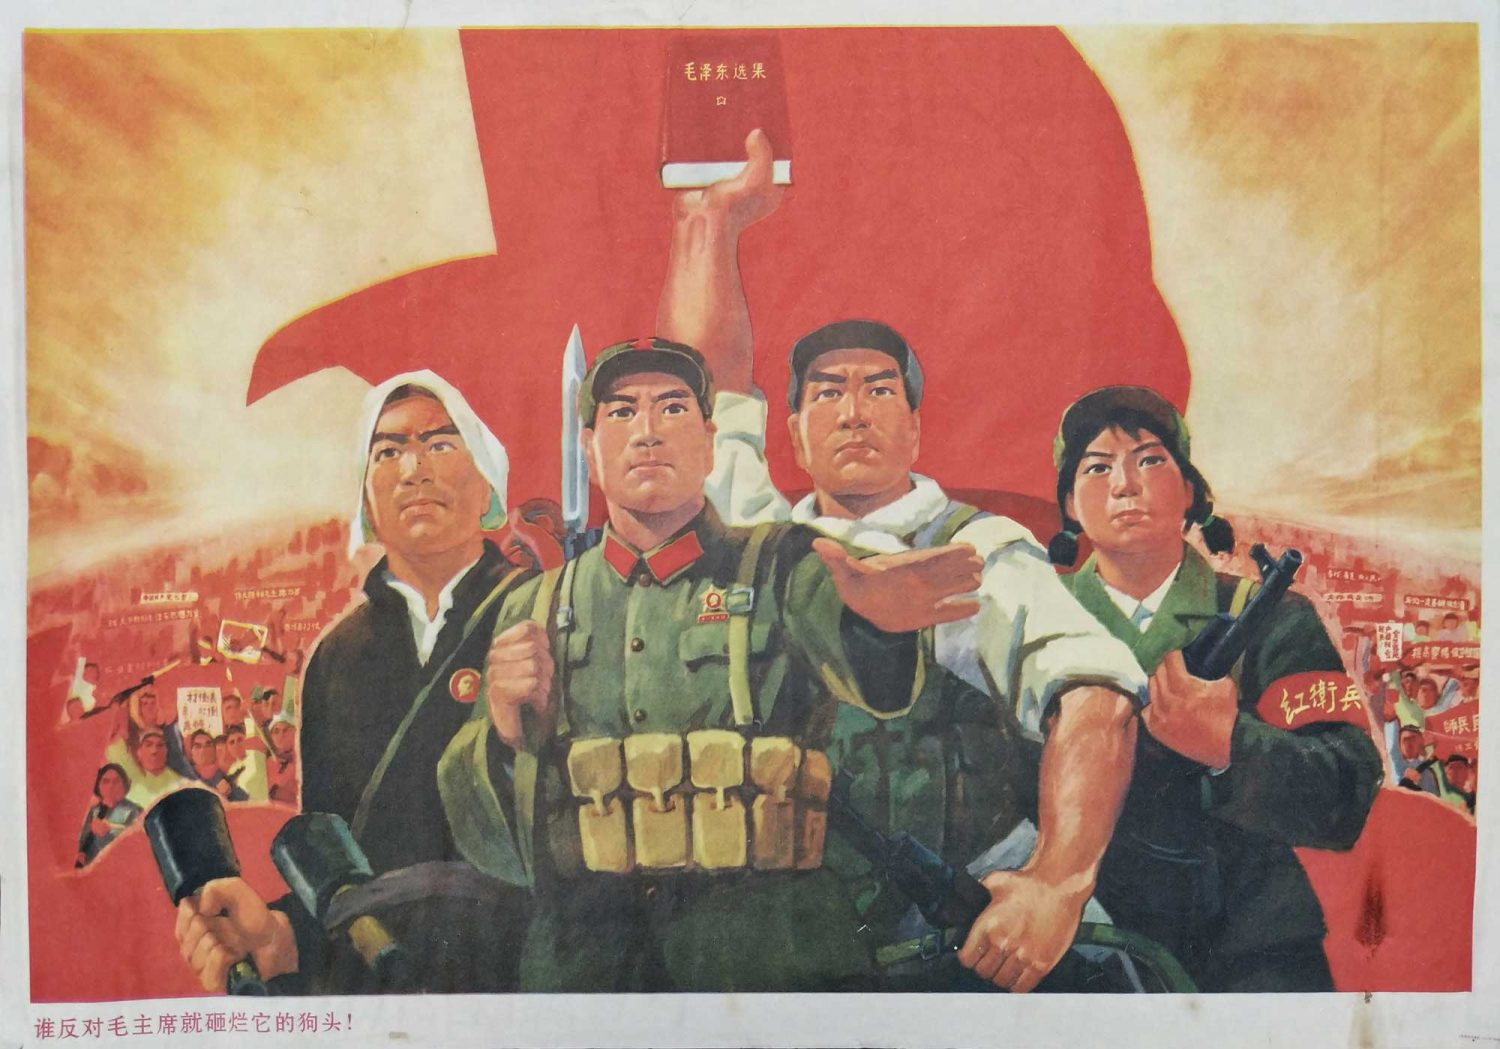 1960s Chinese Revolutionary Poster